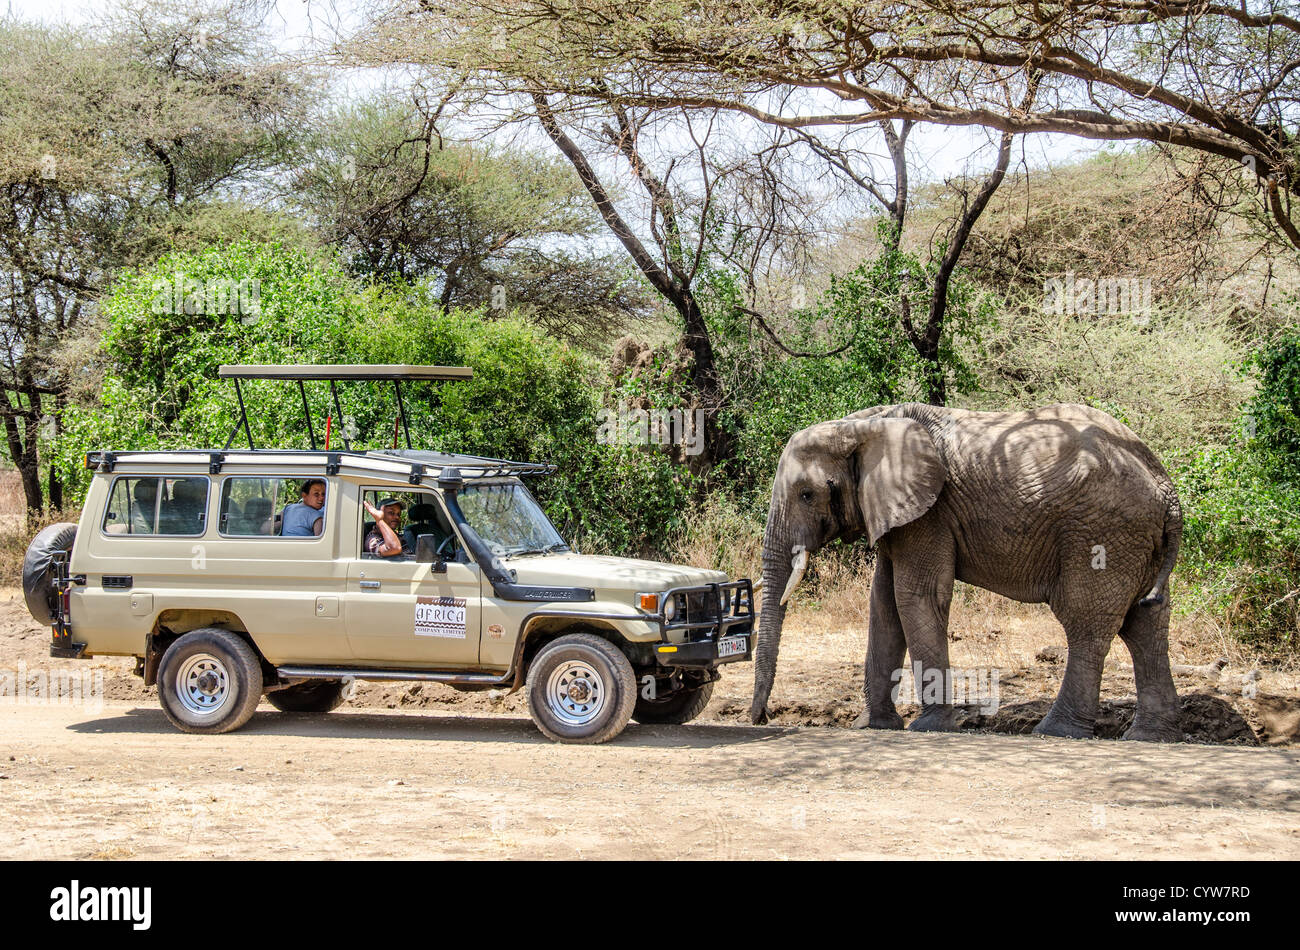 LAKE MANYARA NATIONAL PARK, Tanzania - An elephant walks up to a safari vehicle with tourists at Lake Manyara National - Stock Image